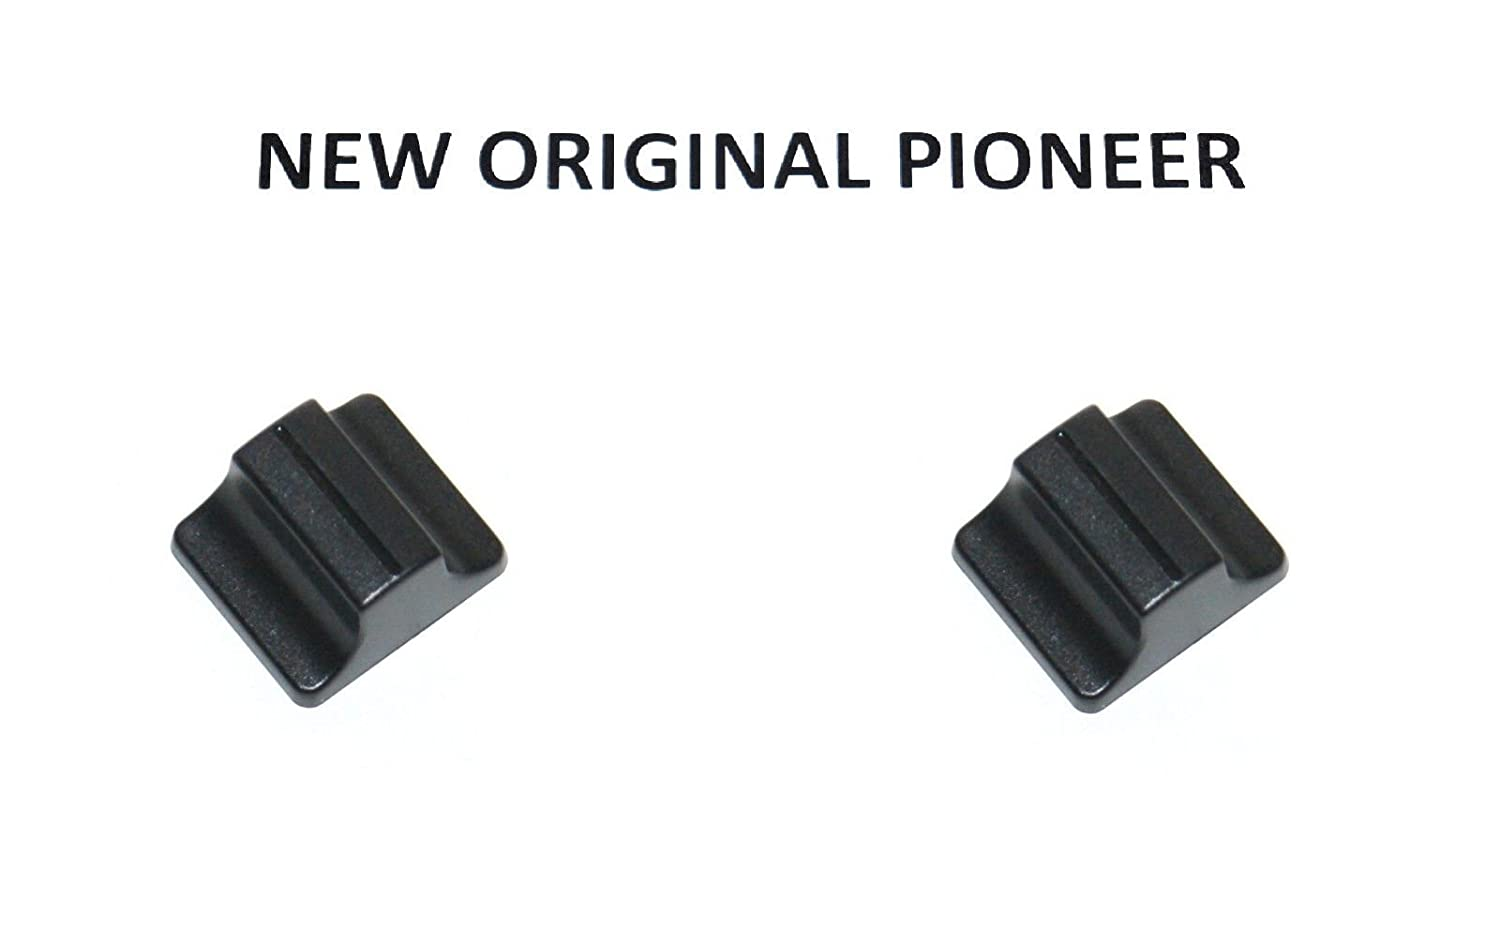 2x New Genuine Pioneer Slide Tempo Knob DNK6283 DJ Controller For DDJ-SB PIONEER_SERVICE_PARTS